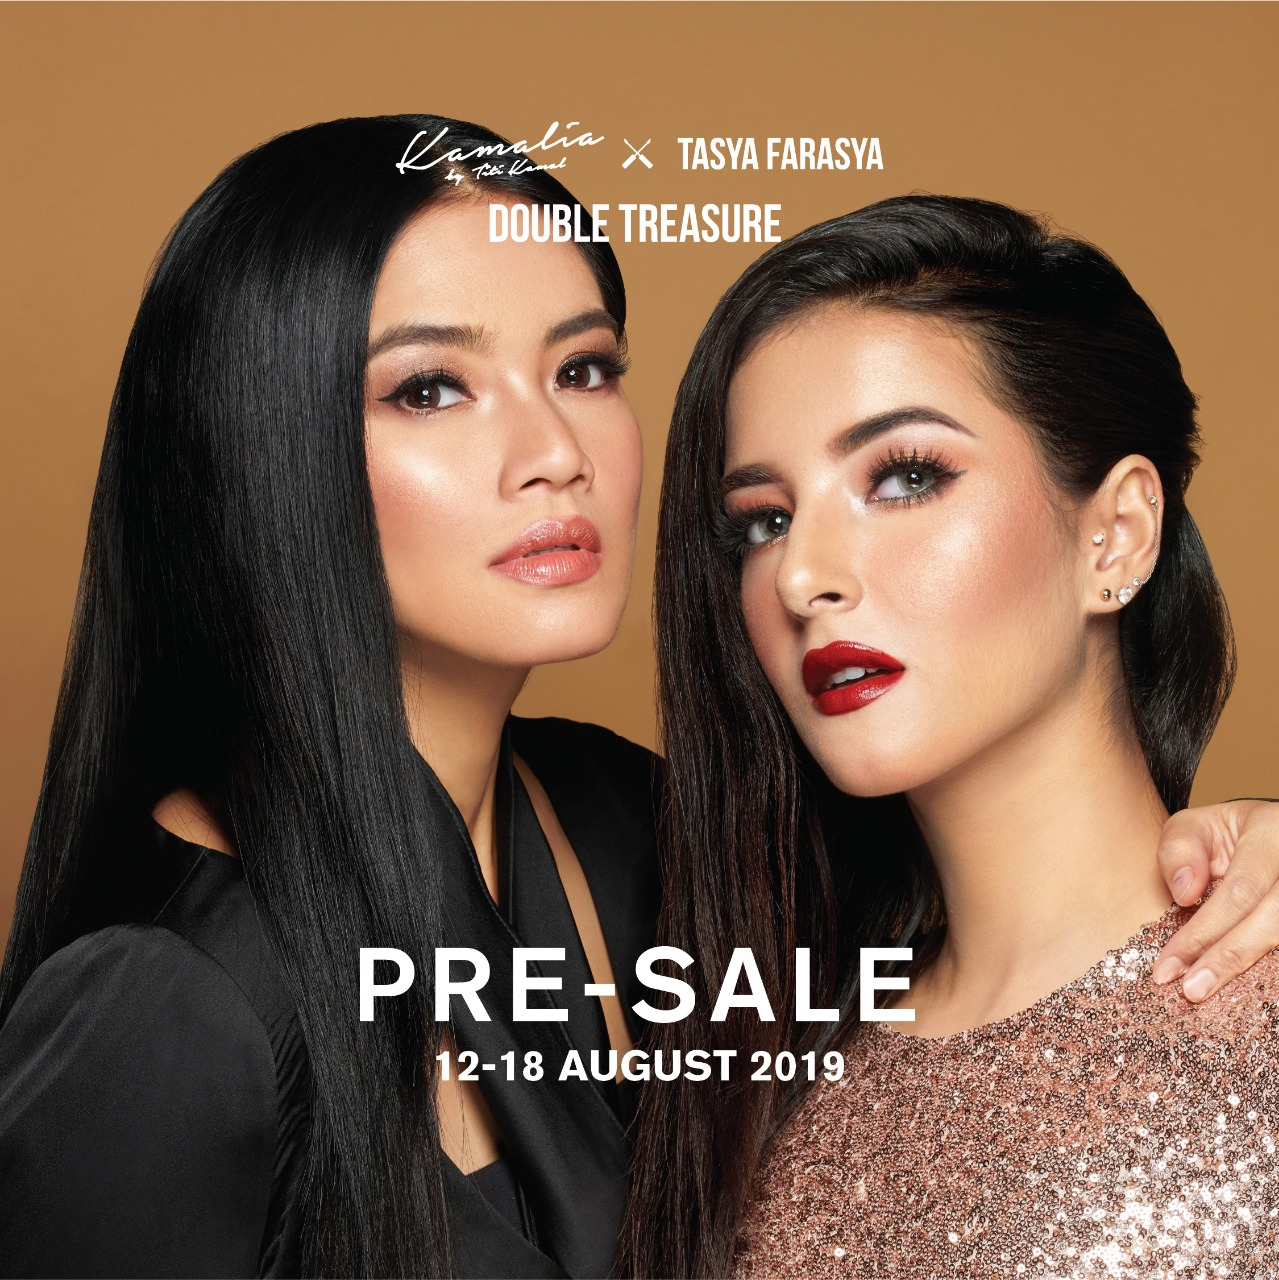 PRESALE DOUBLE TREASURE